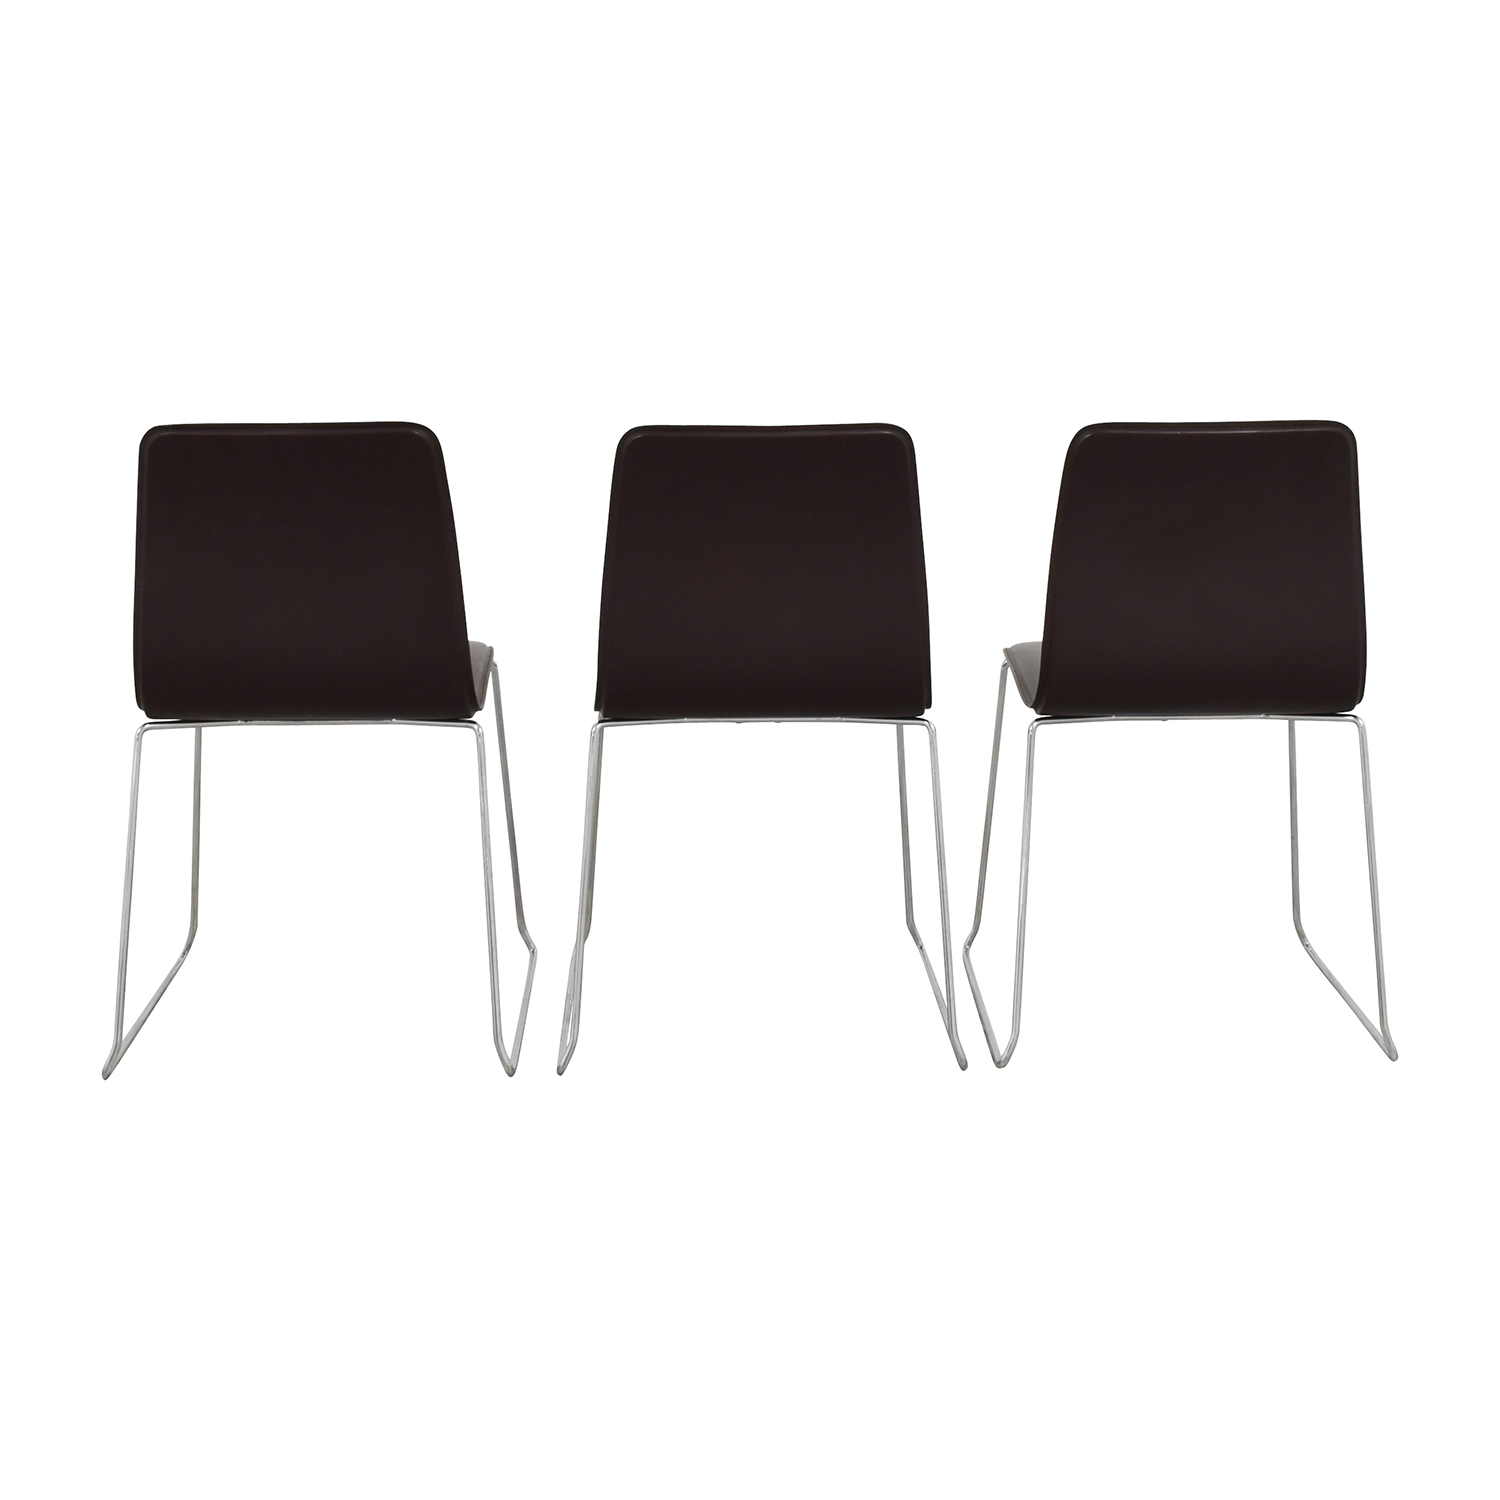 ABC Home & Carpet ABC Home & Carpet Leather and Chrome Chairs, Set of Three used